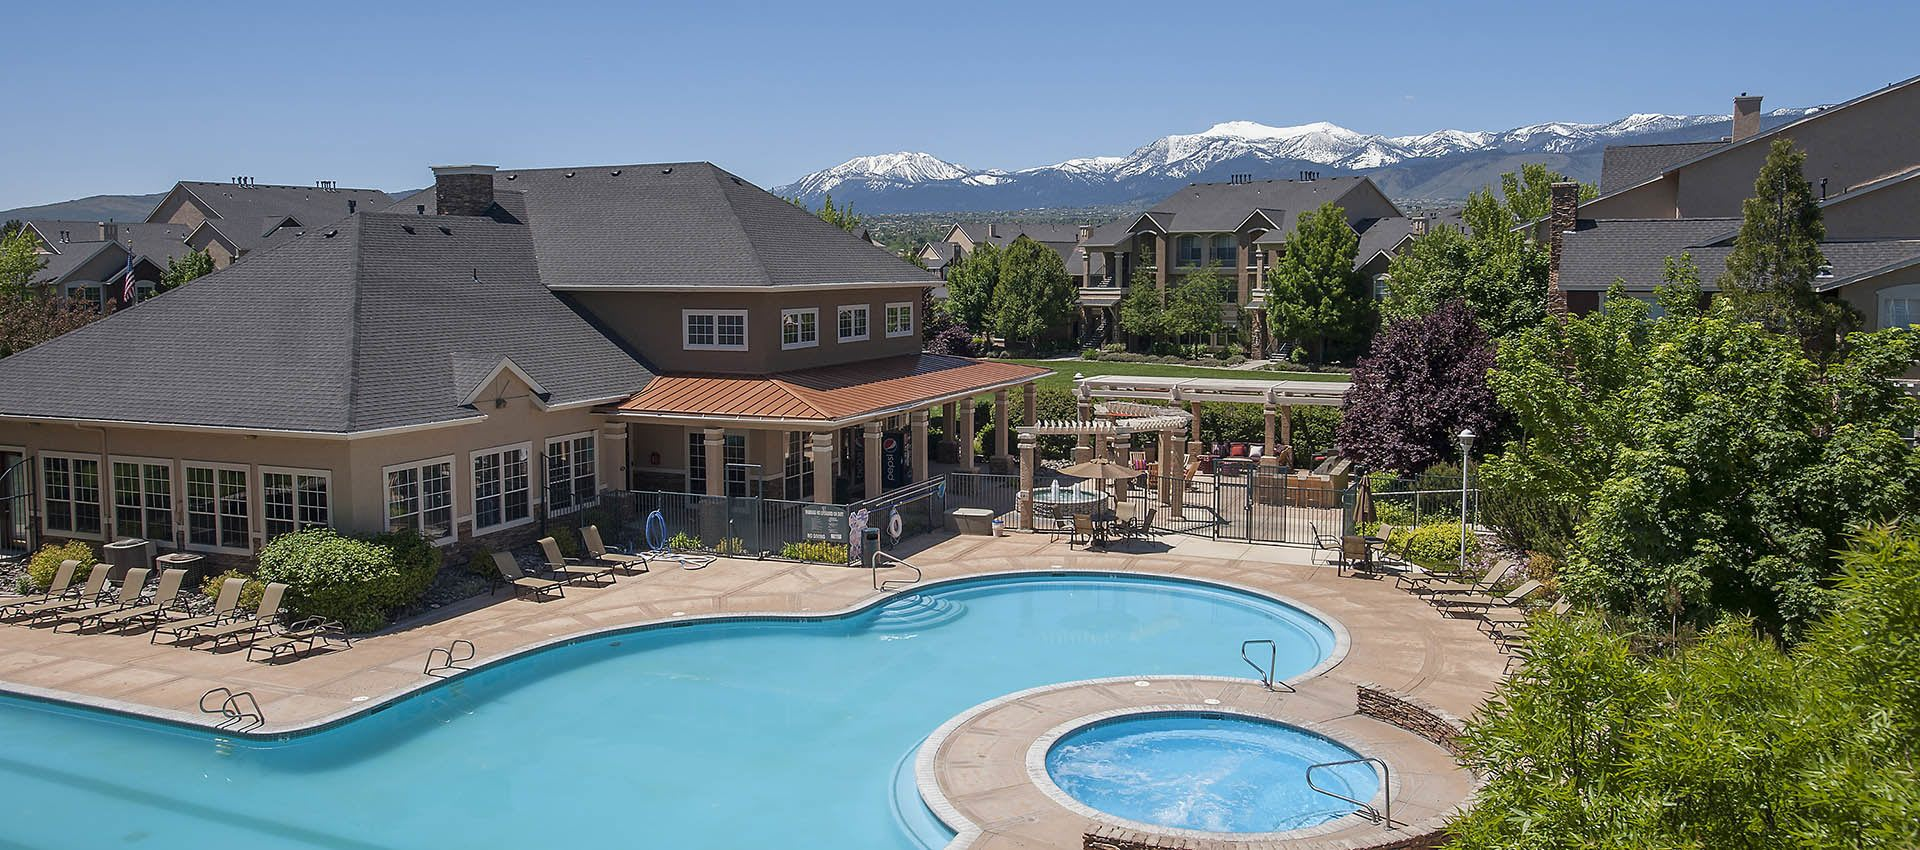 The pool and clubhouse at The Vintage at South Meadows Condominium Rentals in Reno